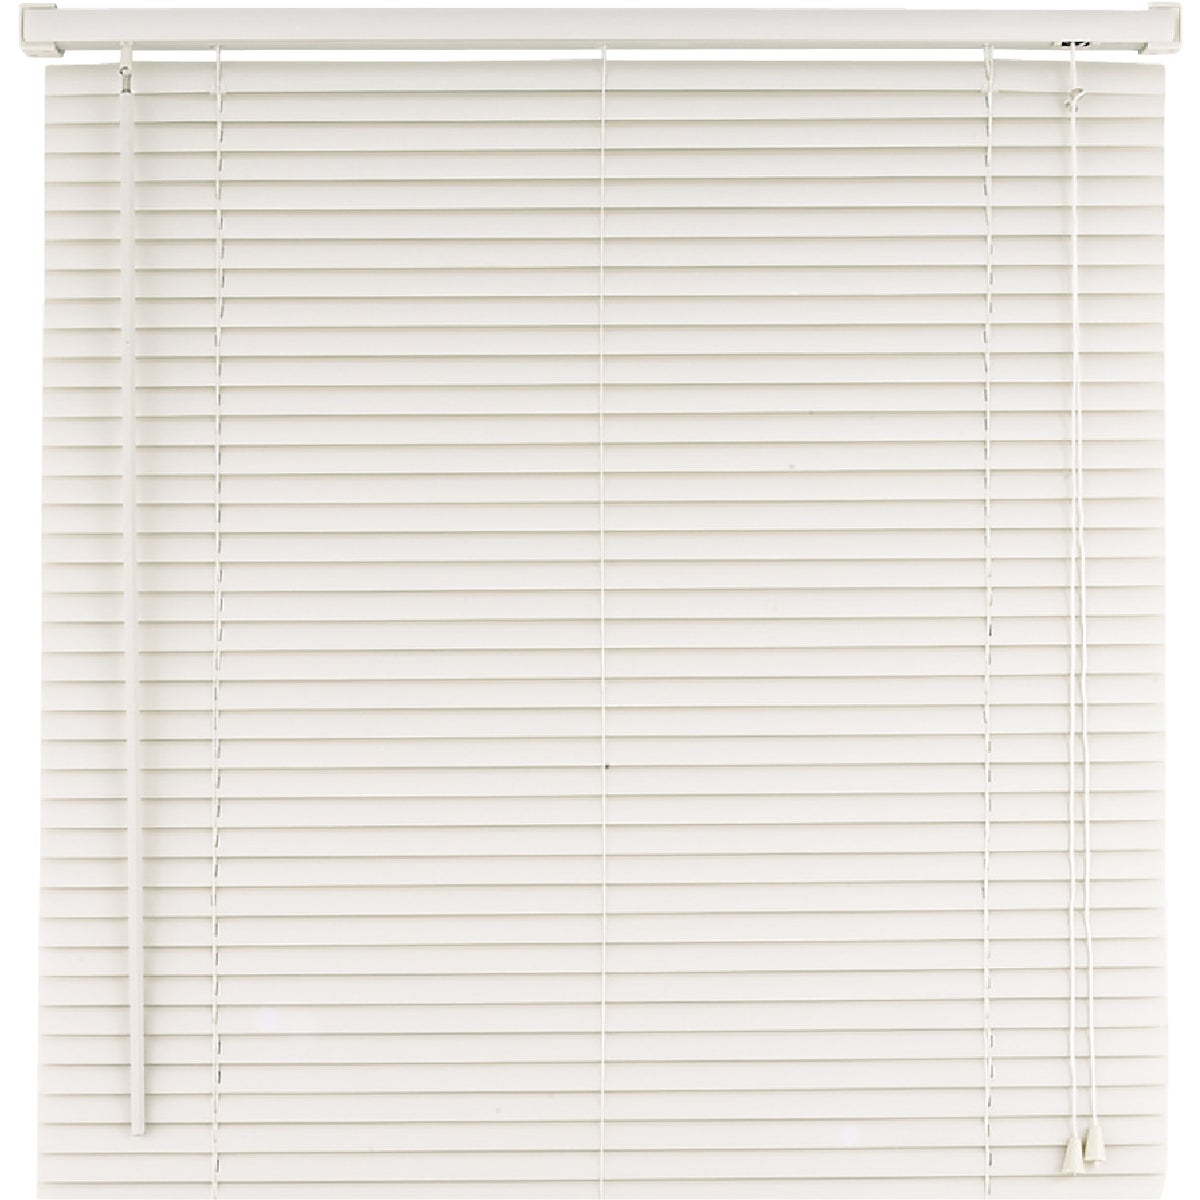 23X42 WHITE MINI BLIND - 15366 by Lotus Wind Incom